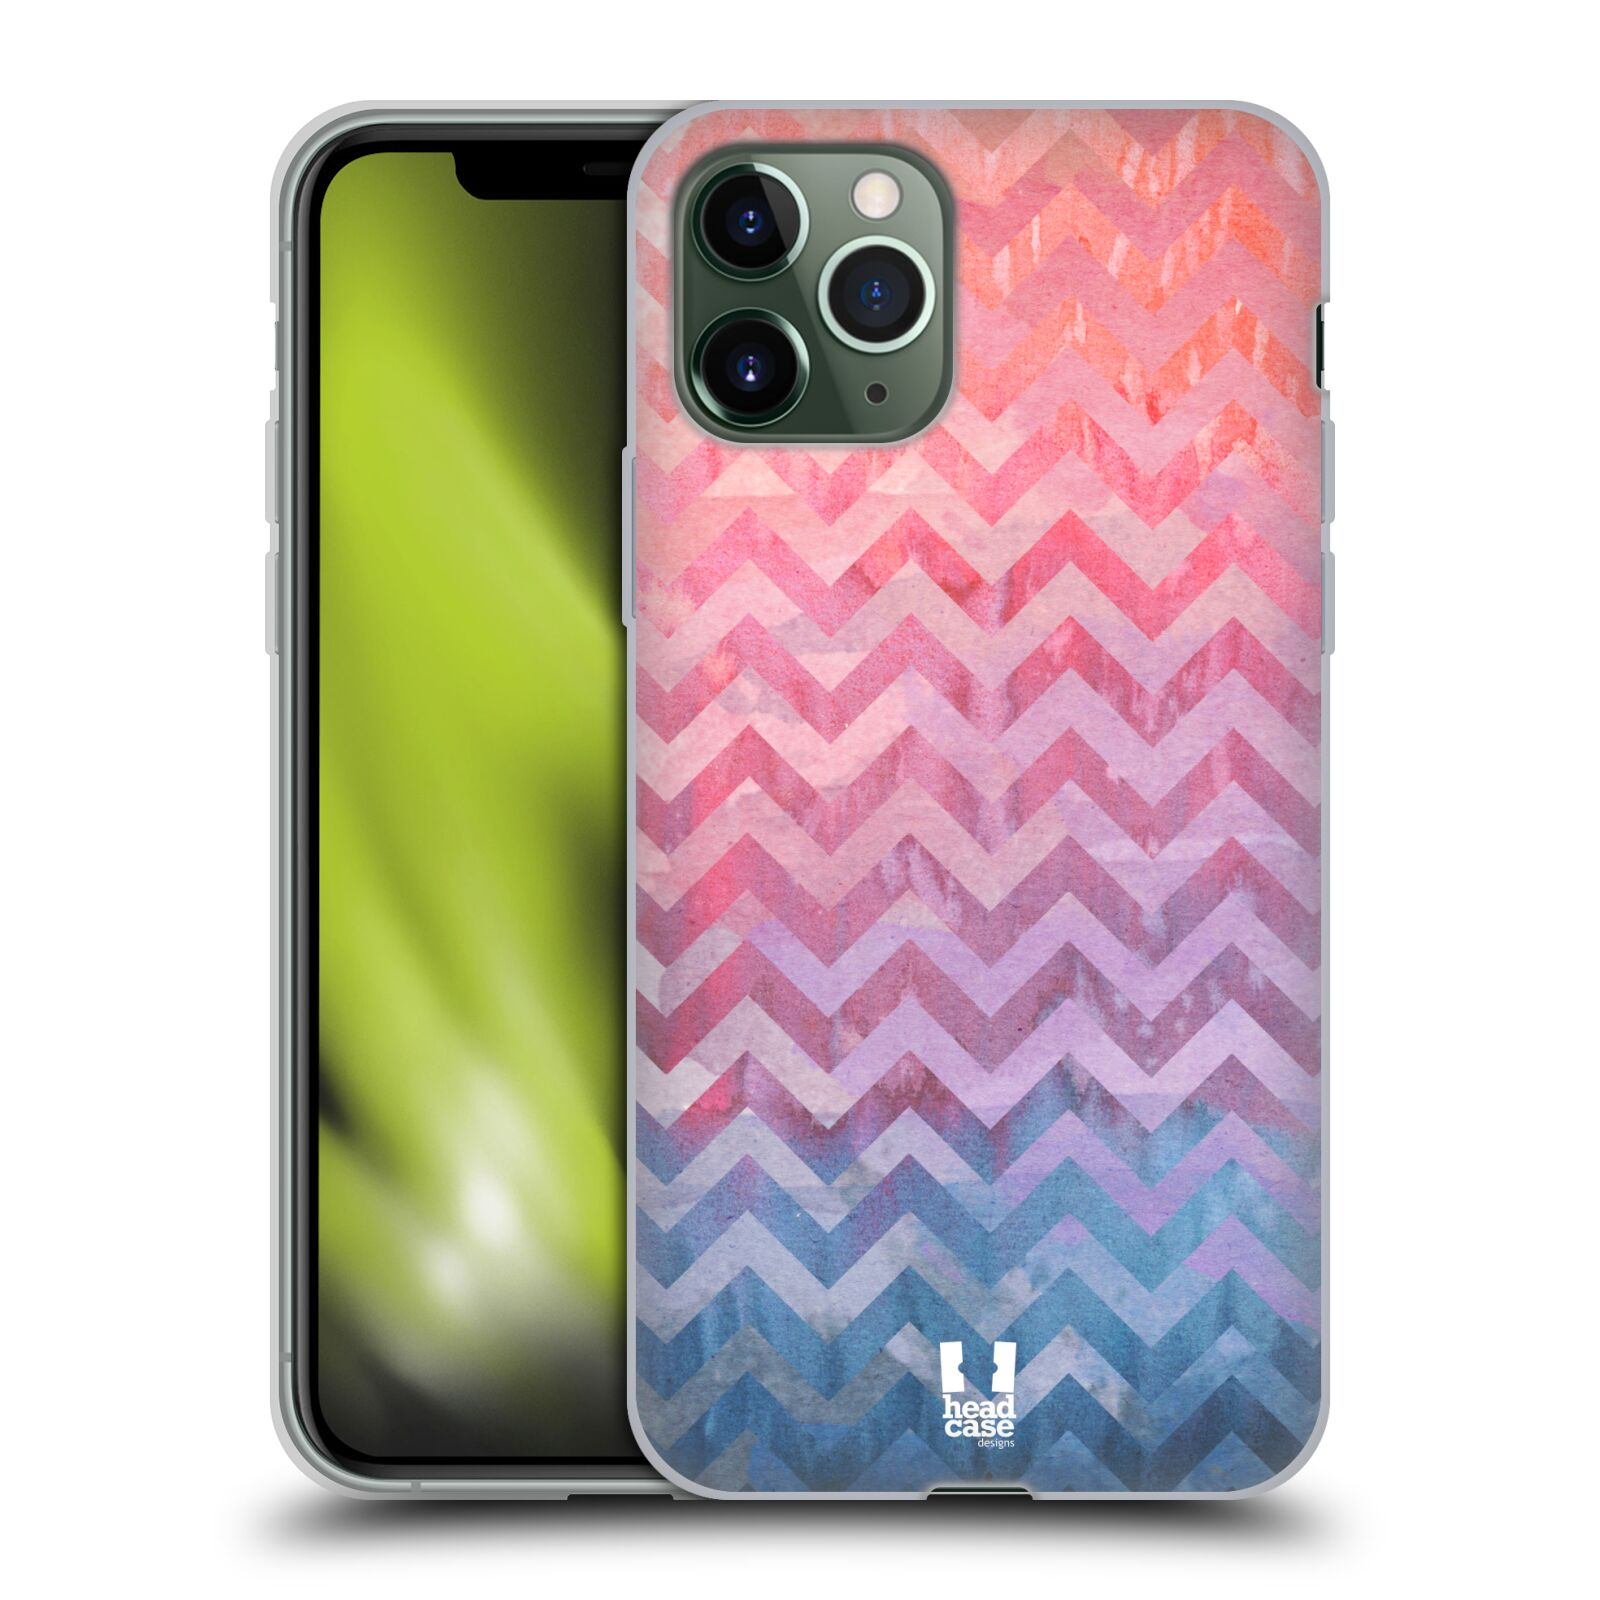 bazar obaly iphone 8 plus | Silikonové pouzdro na mobil Apple iPhone 11 Pro - Head Case - Pink Chevron